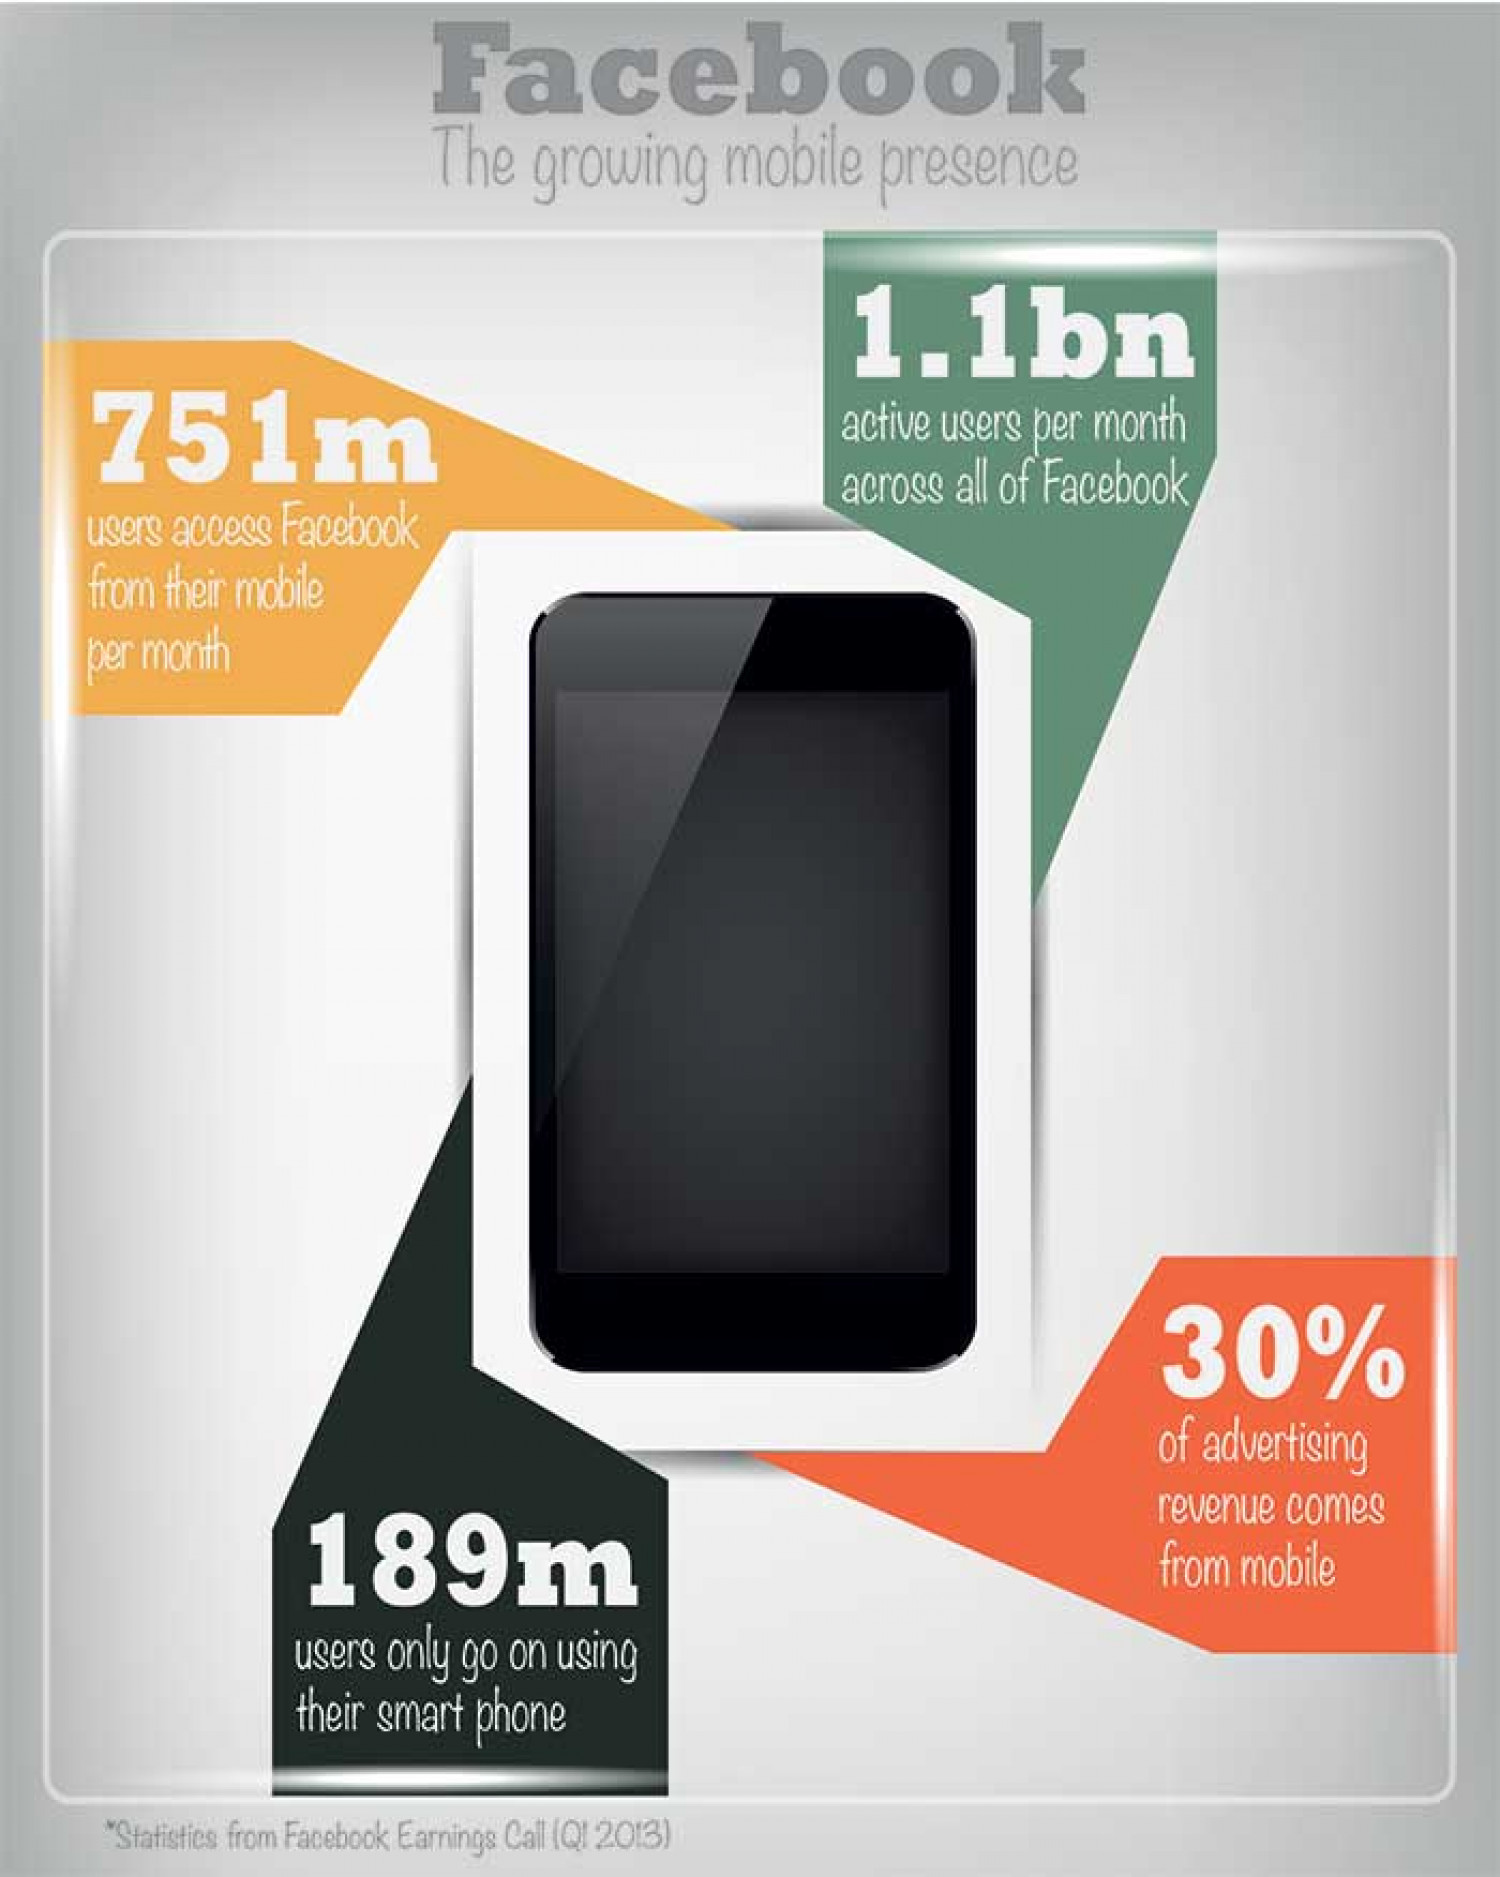 Facebook mobile users Infographic